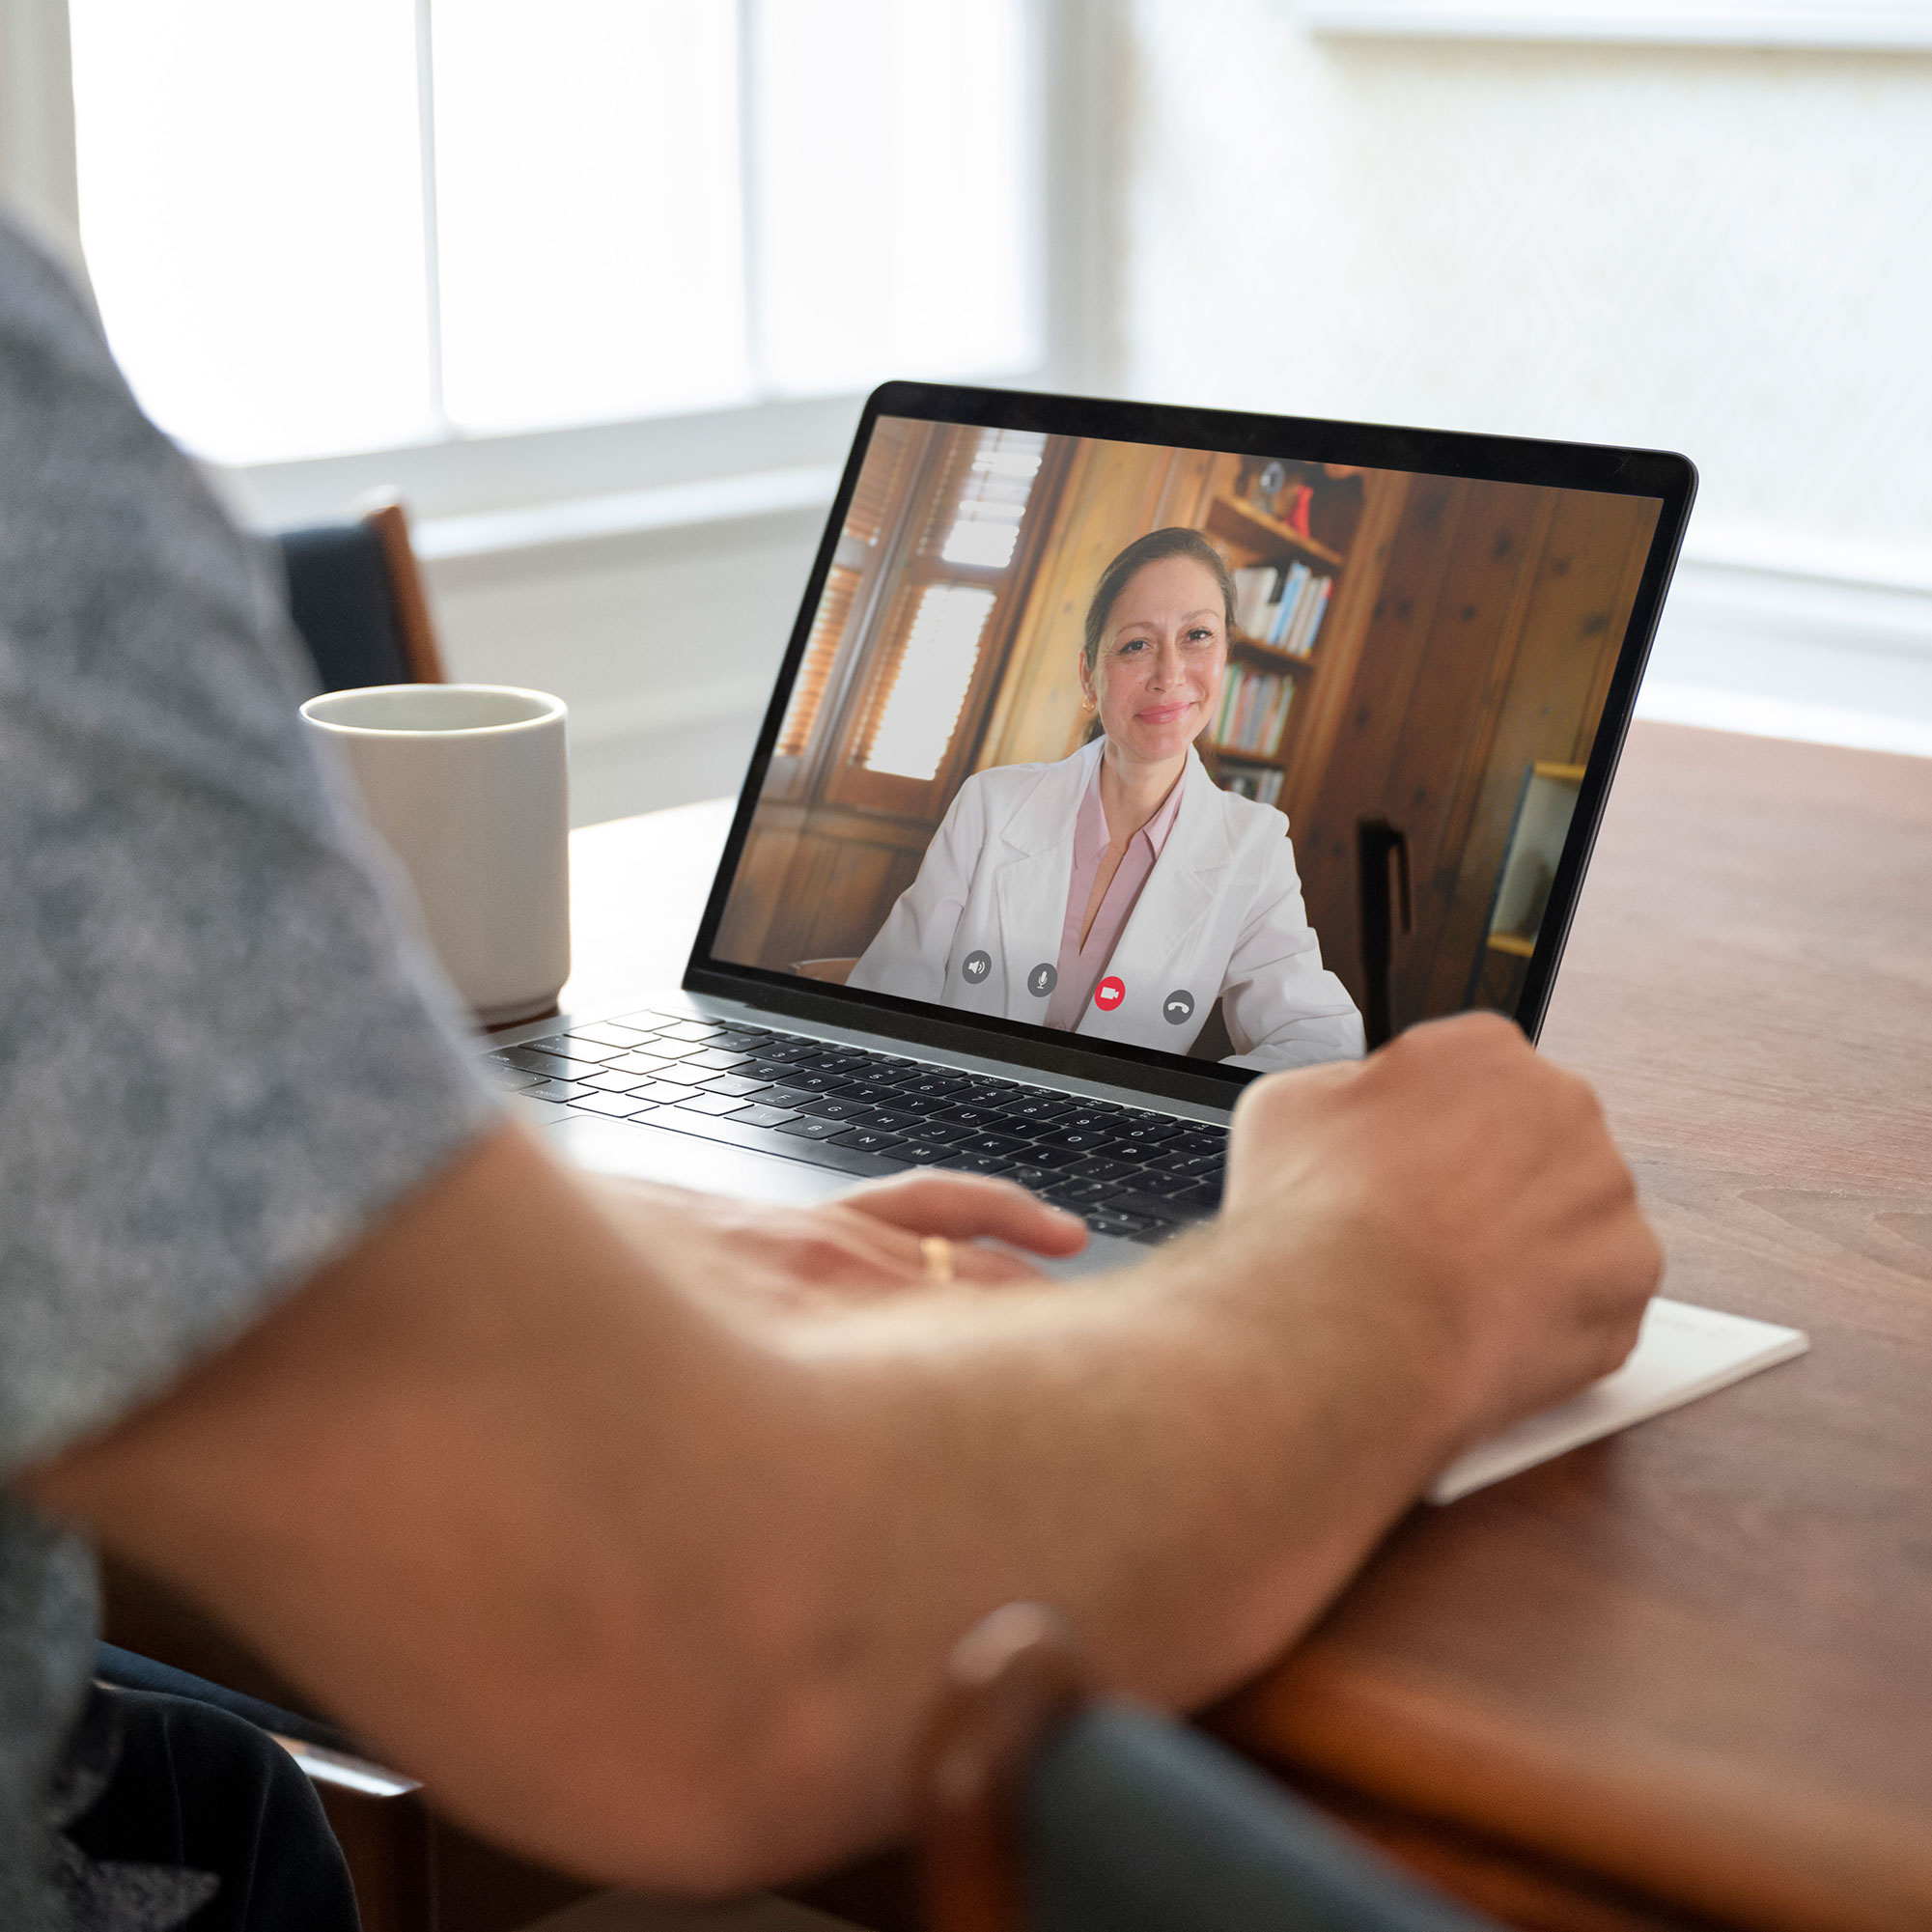 Patient uses virtual care via their laptop to meet with a physician.